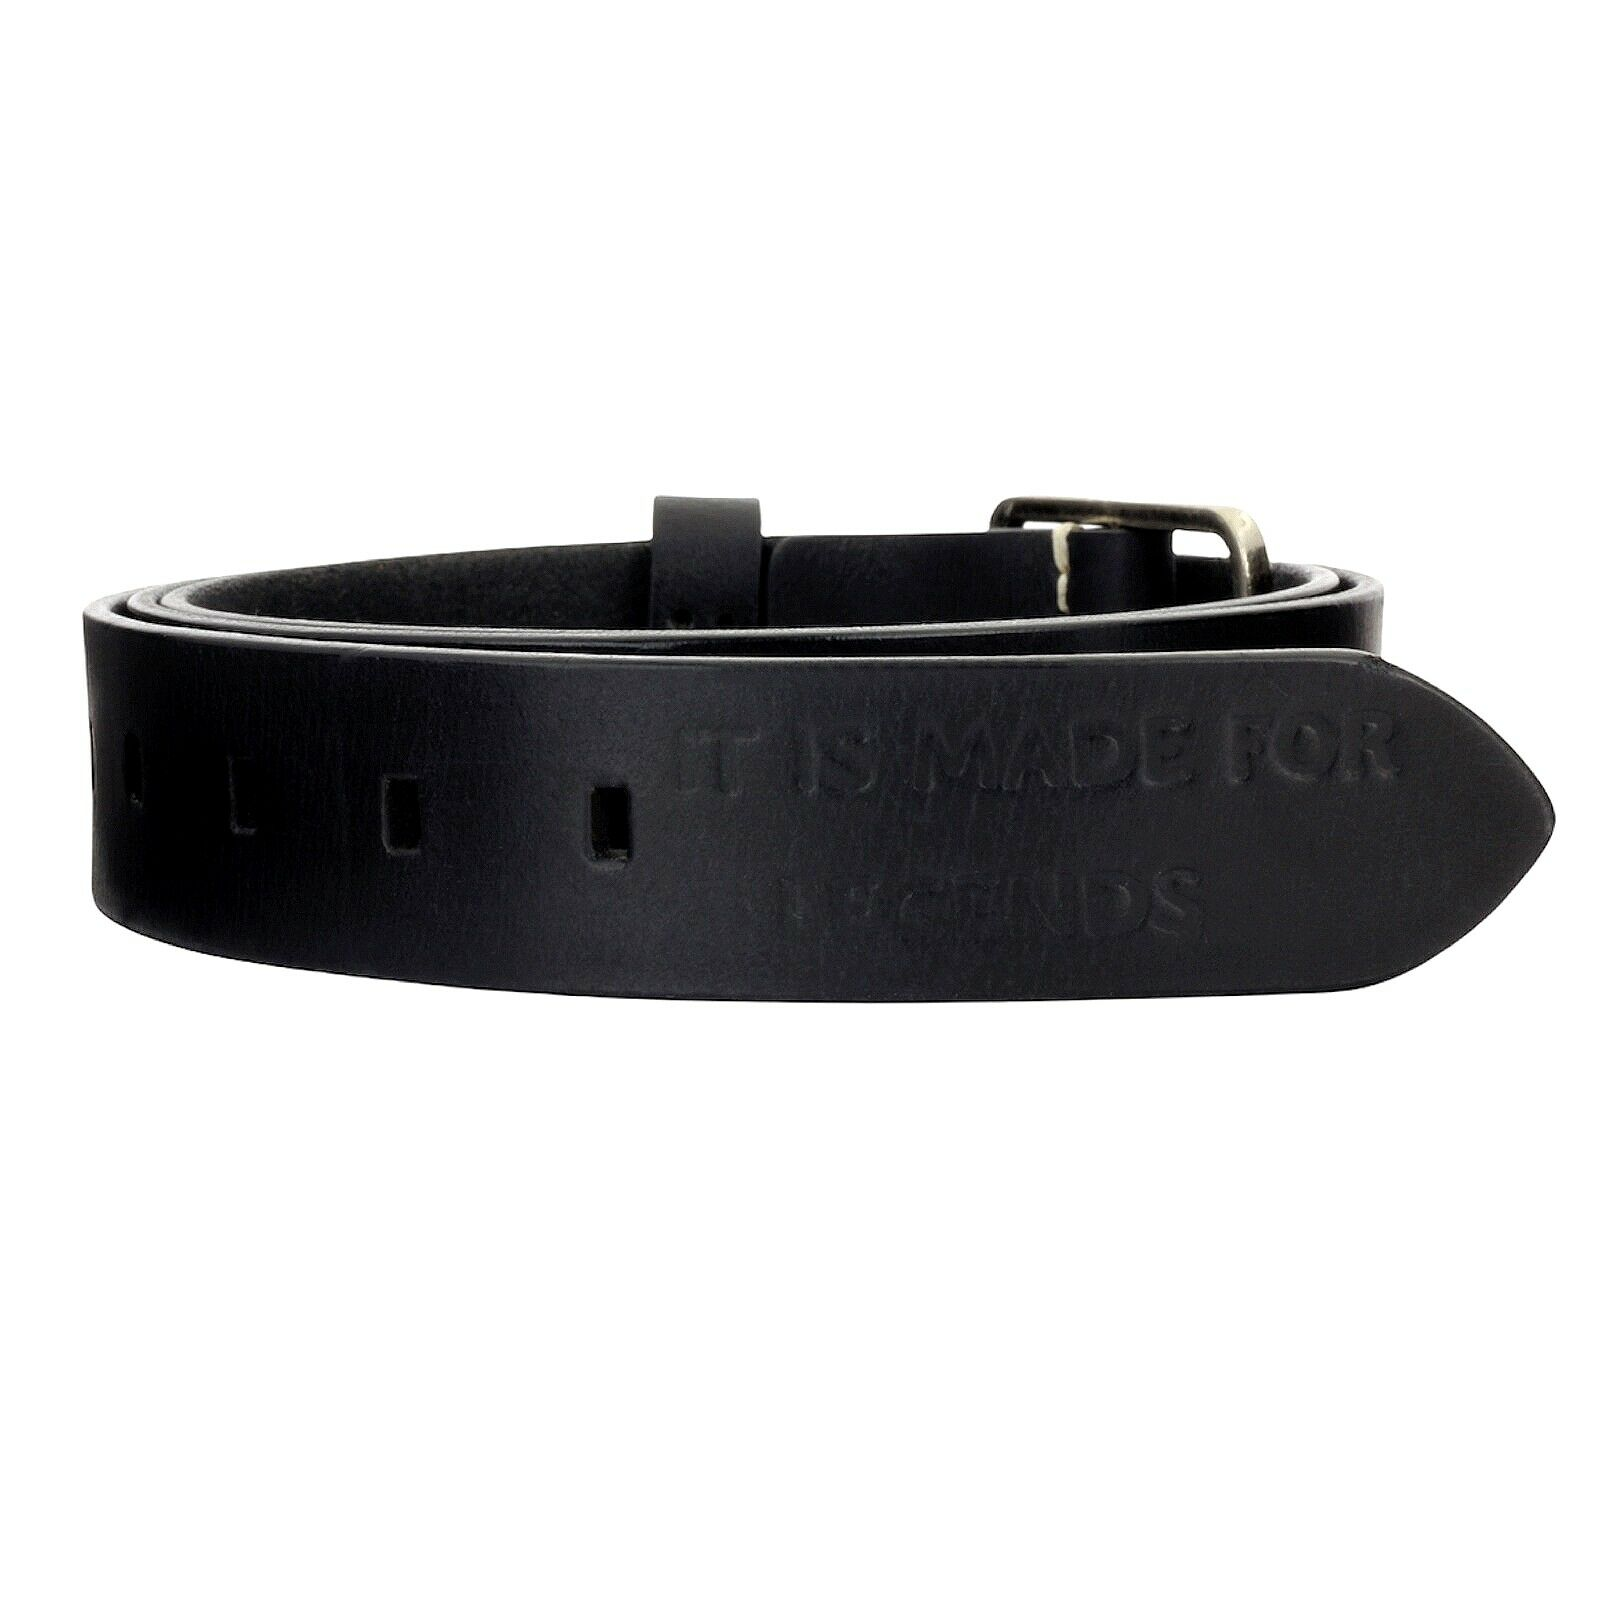 Leather Belt Black Mens Ladies 35mm Wide Full Leather Belt Real Leather Manza